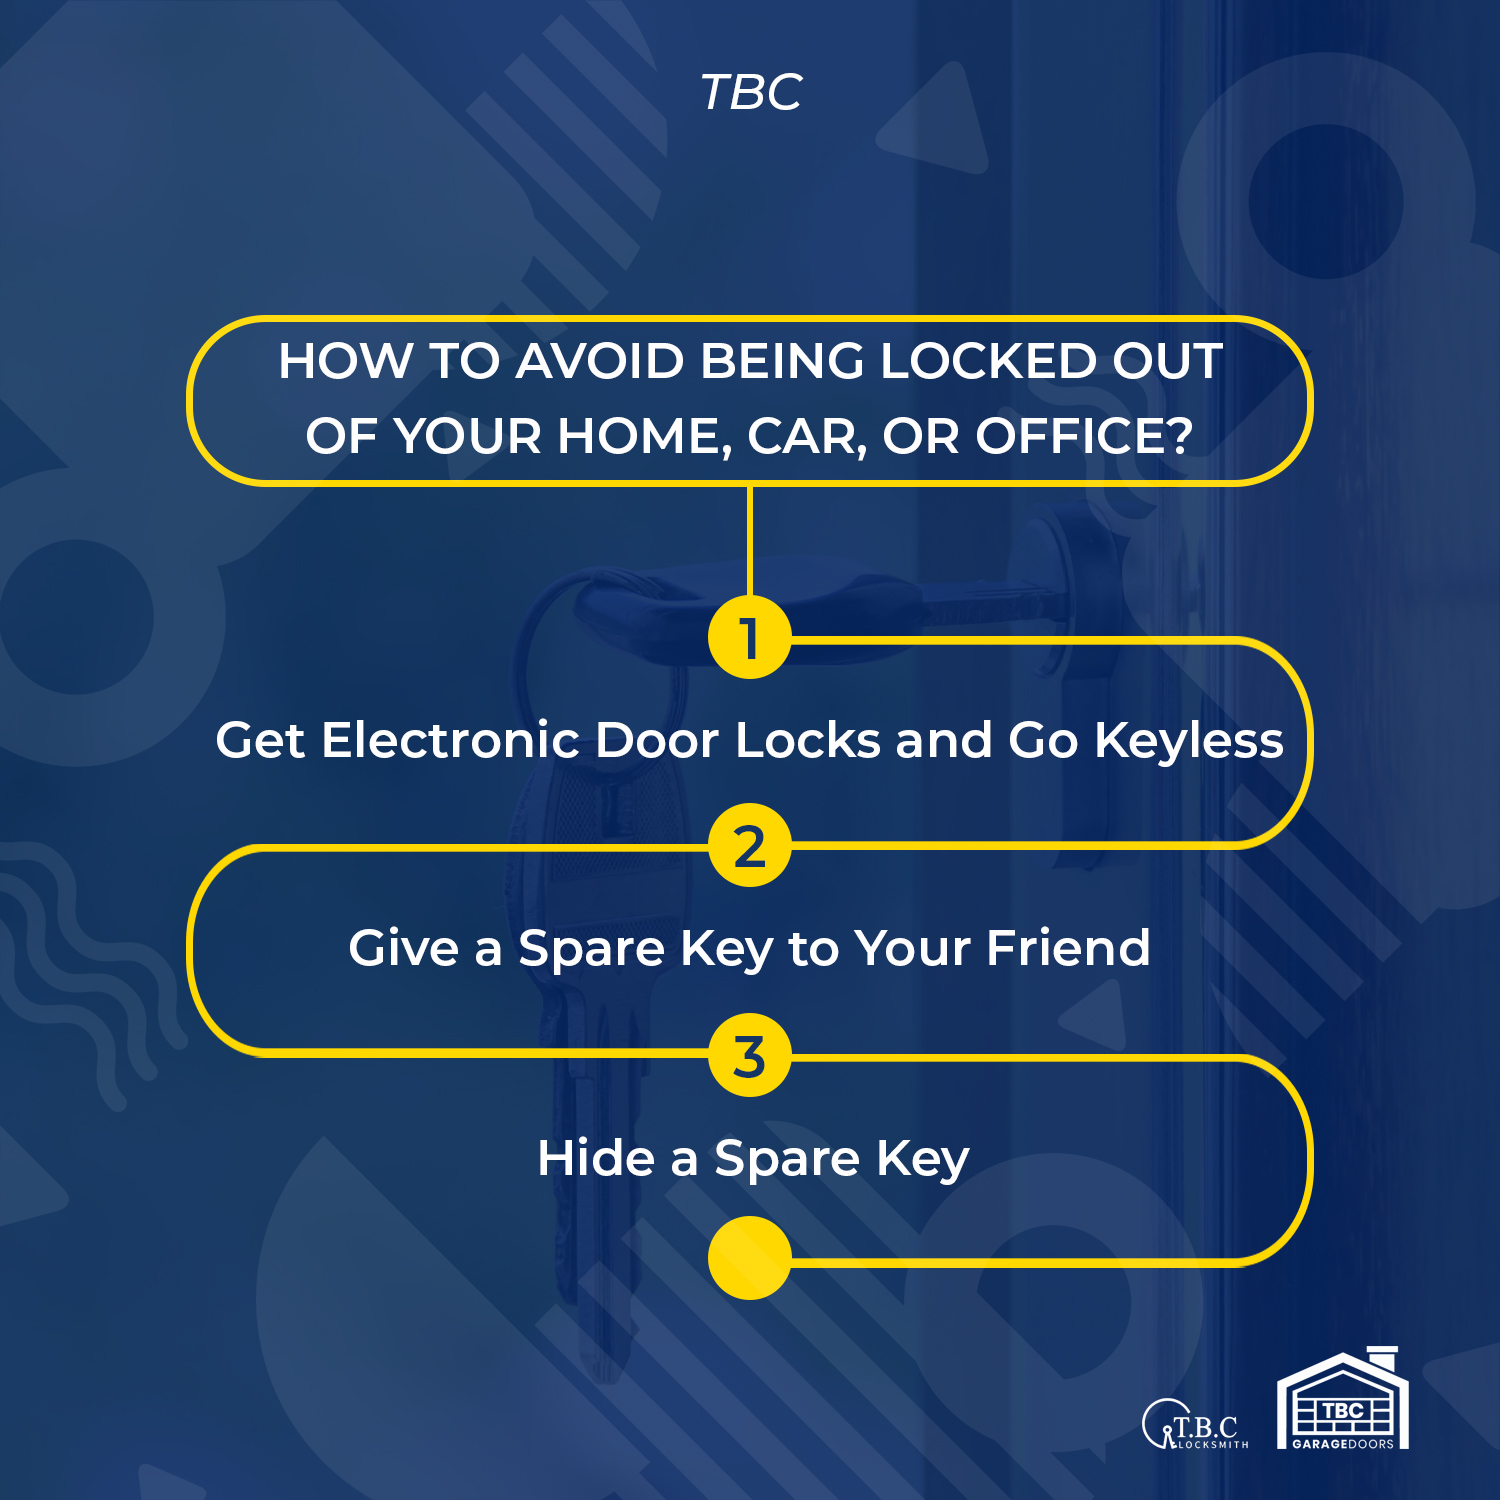 How to Avoid Being Locked Out of Your Home, Car, or Office